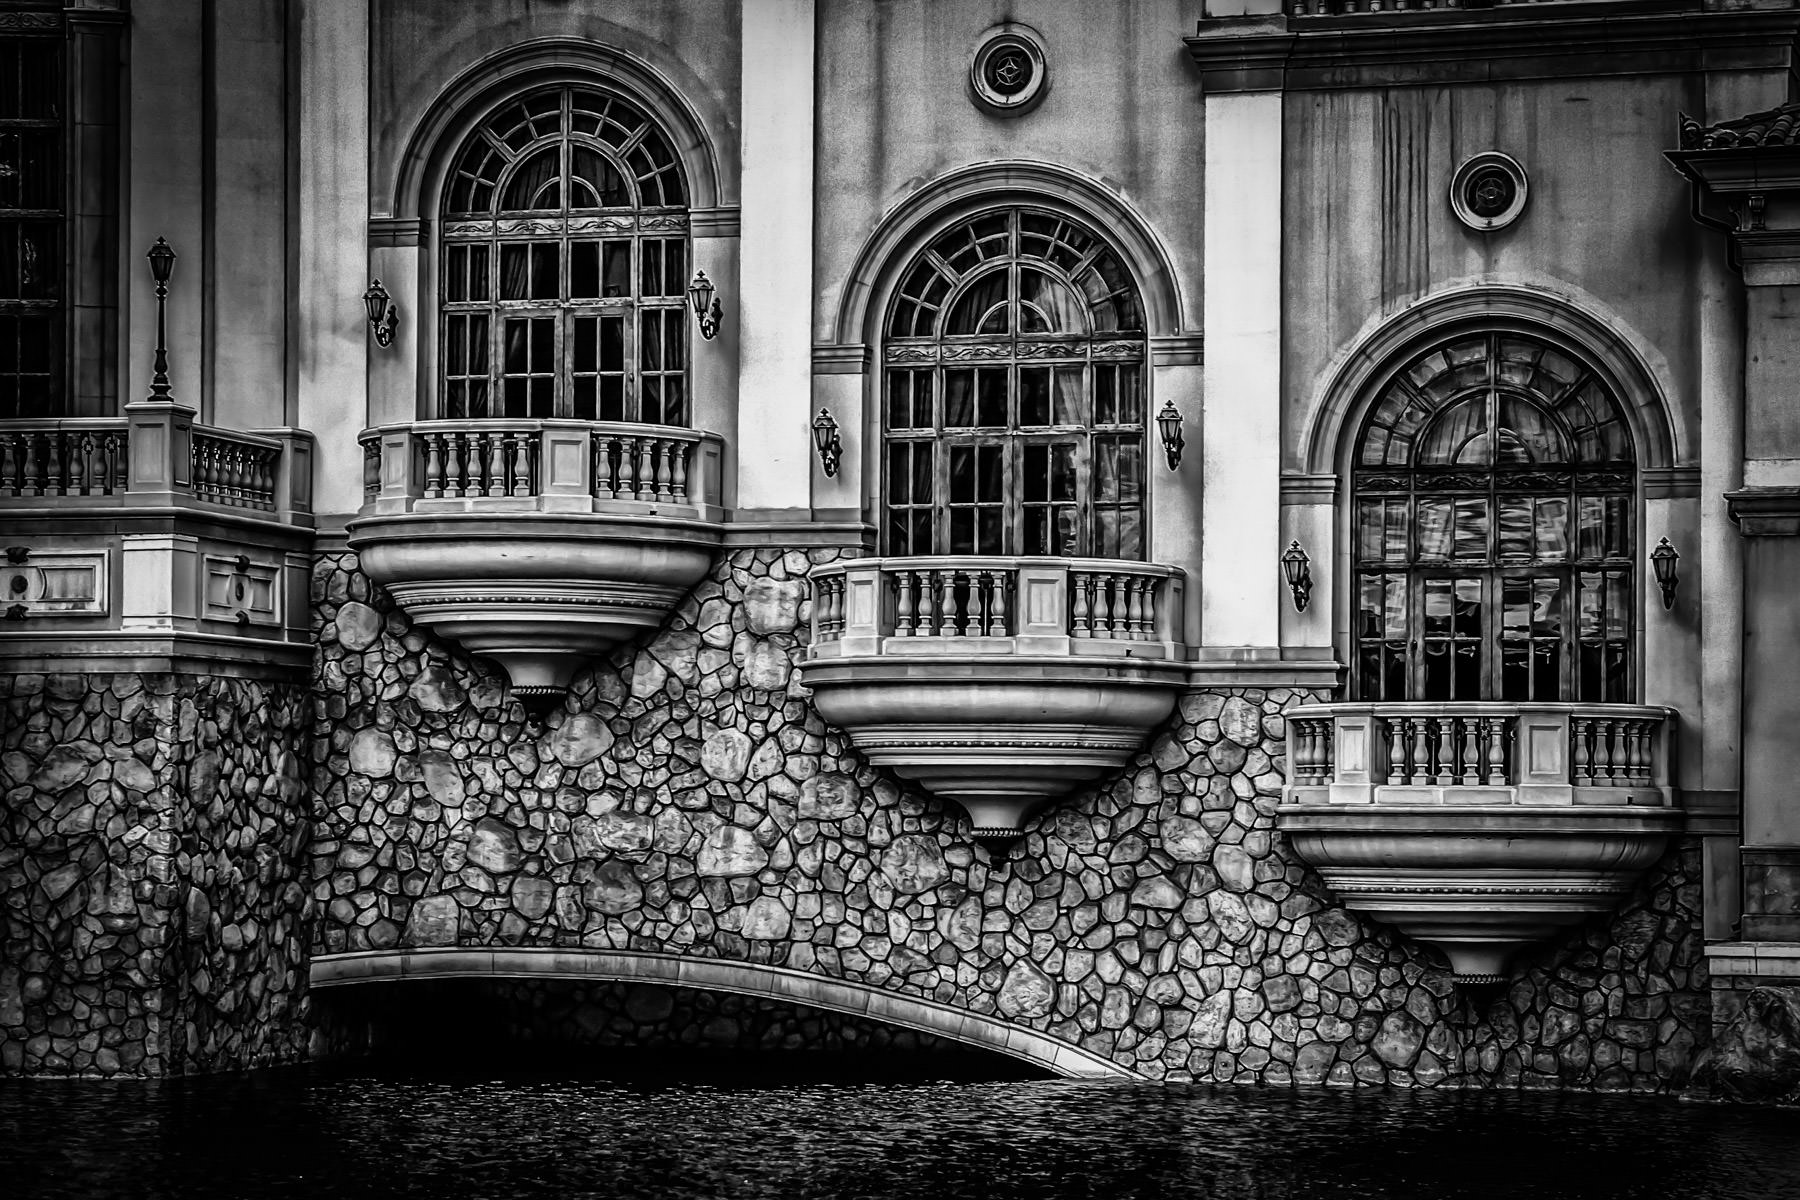 Exterior detail of The Bellagio, Las Vegas.